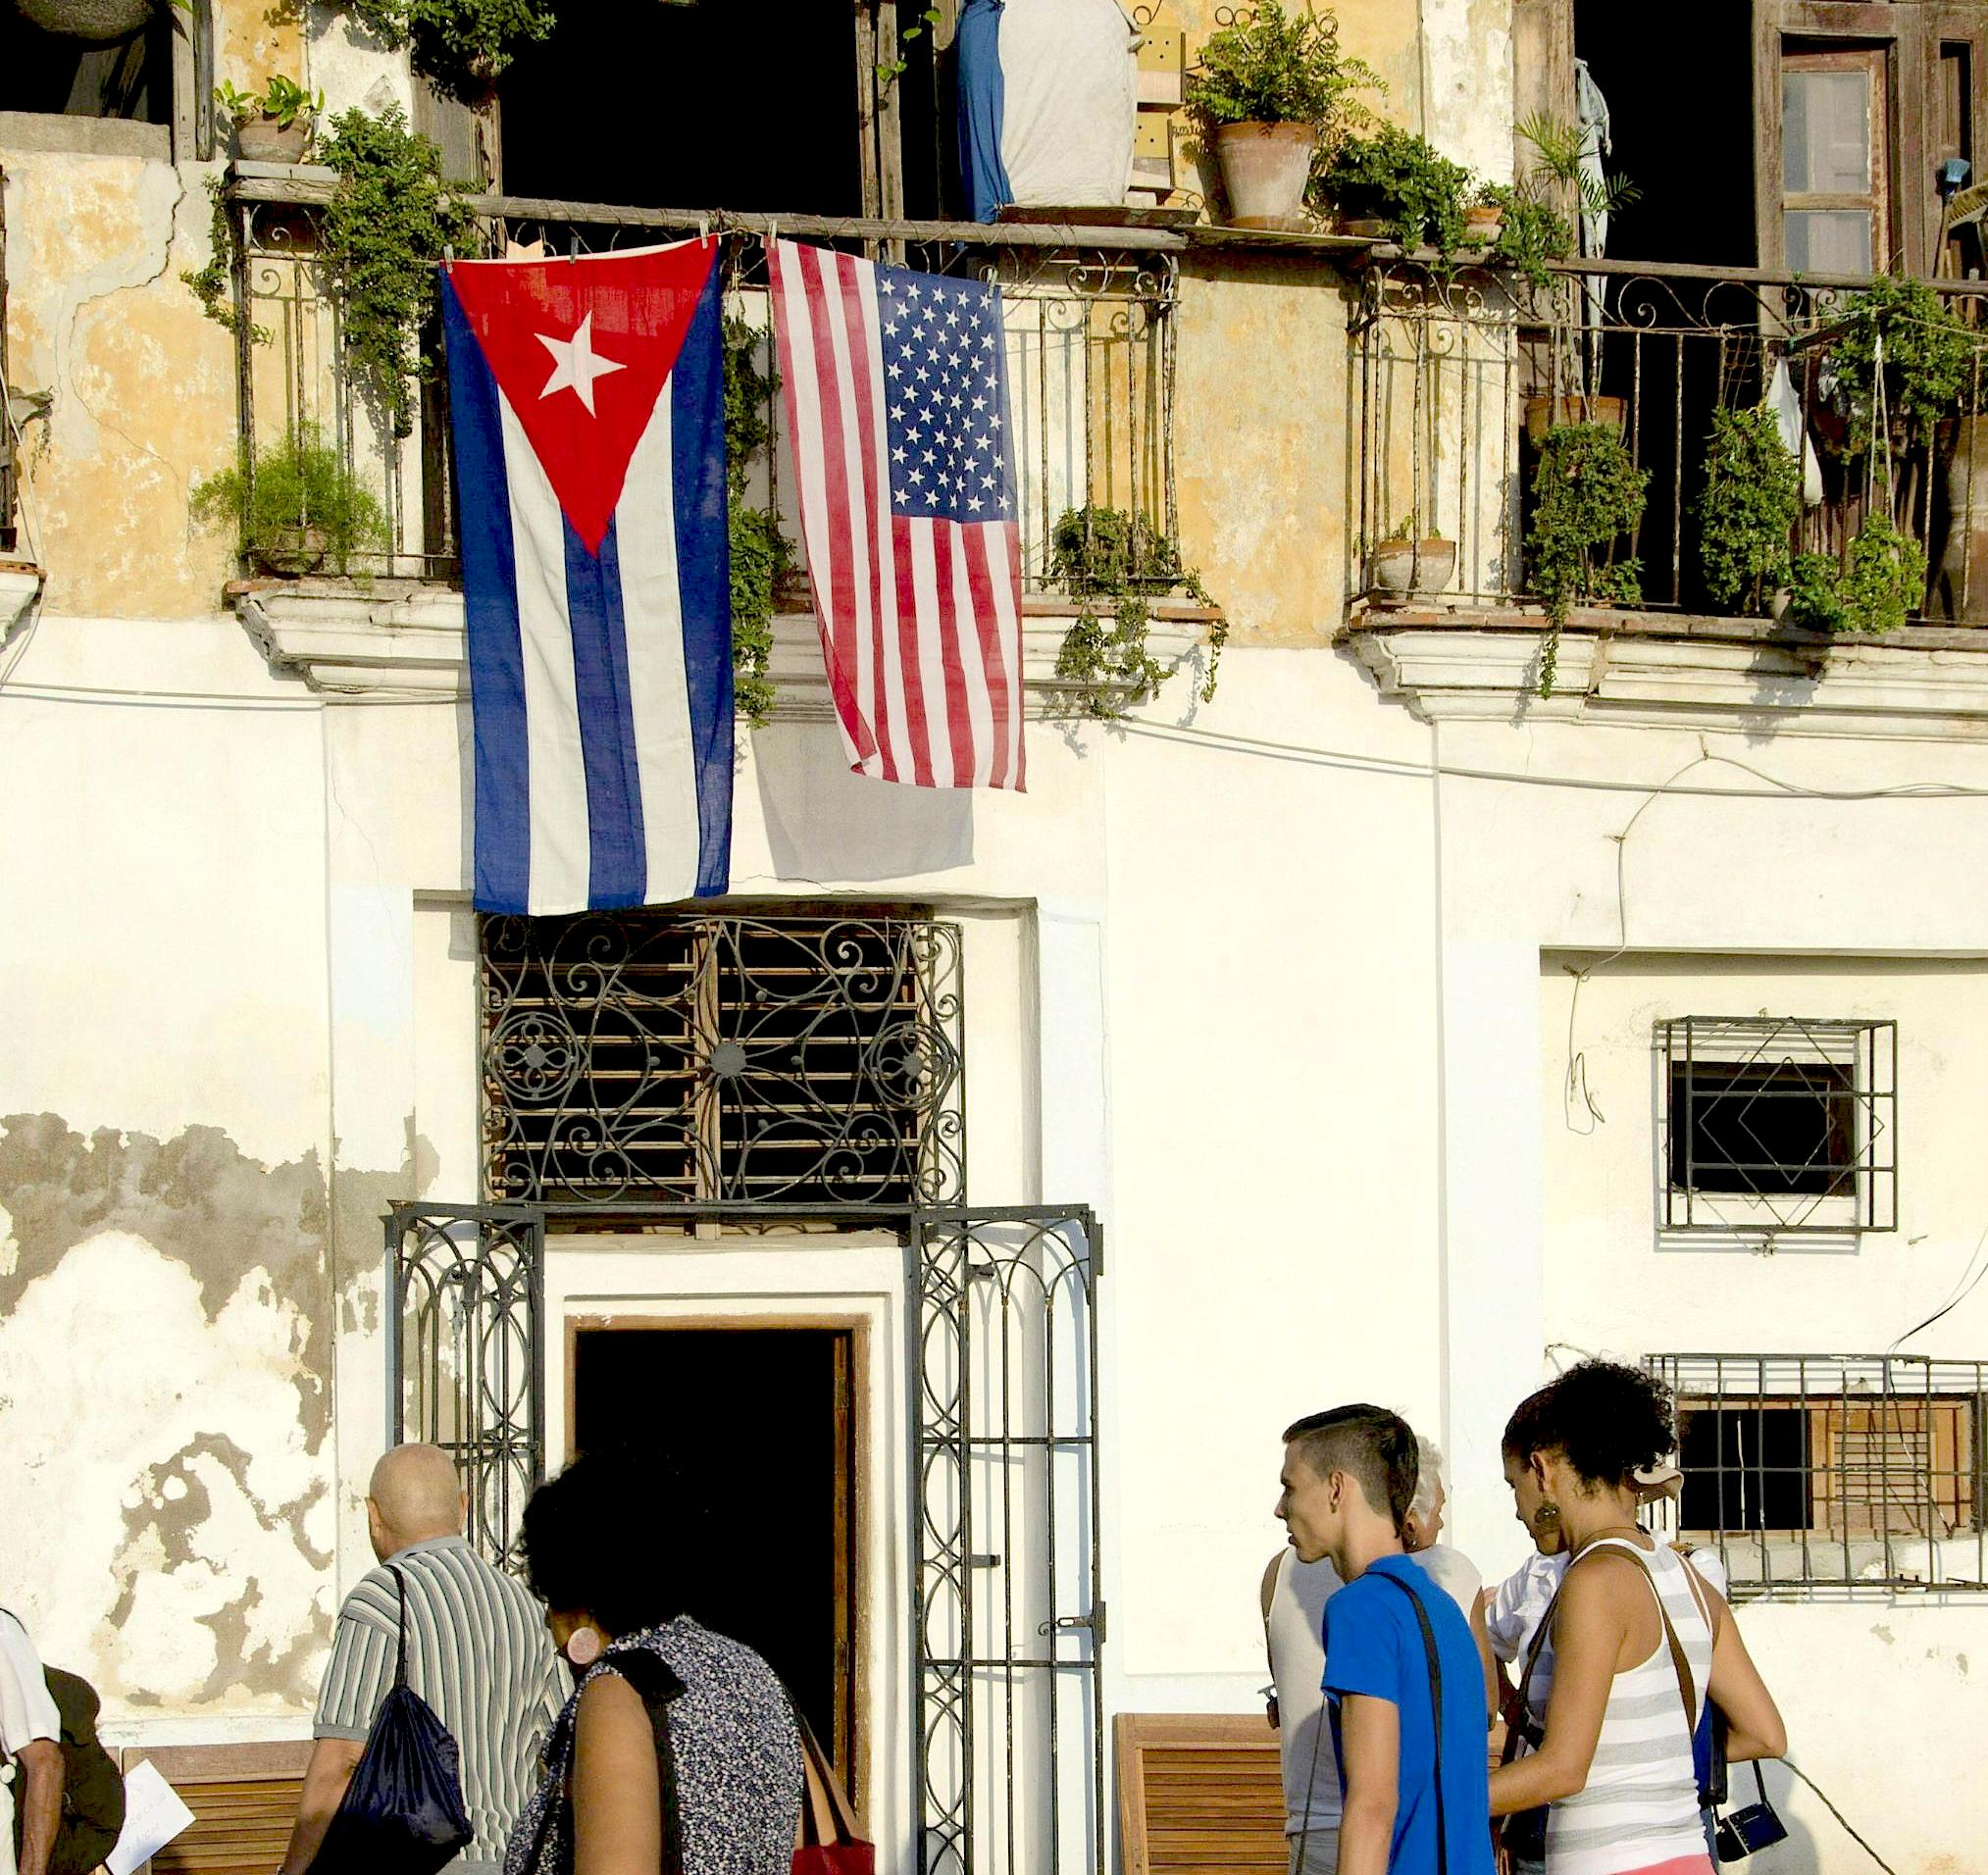 People walk by a balcony with the flags of USA and Cuba in Havana